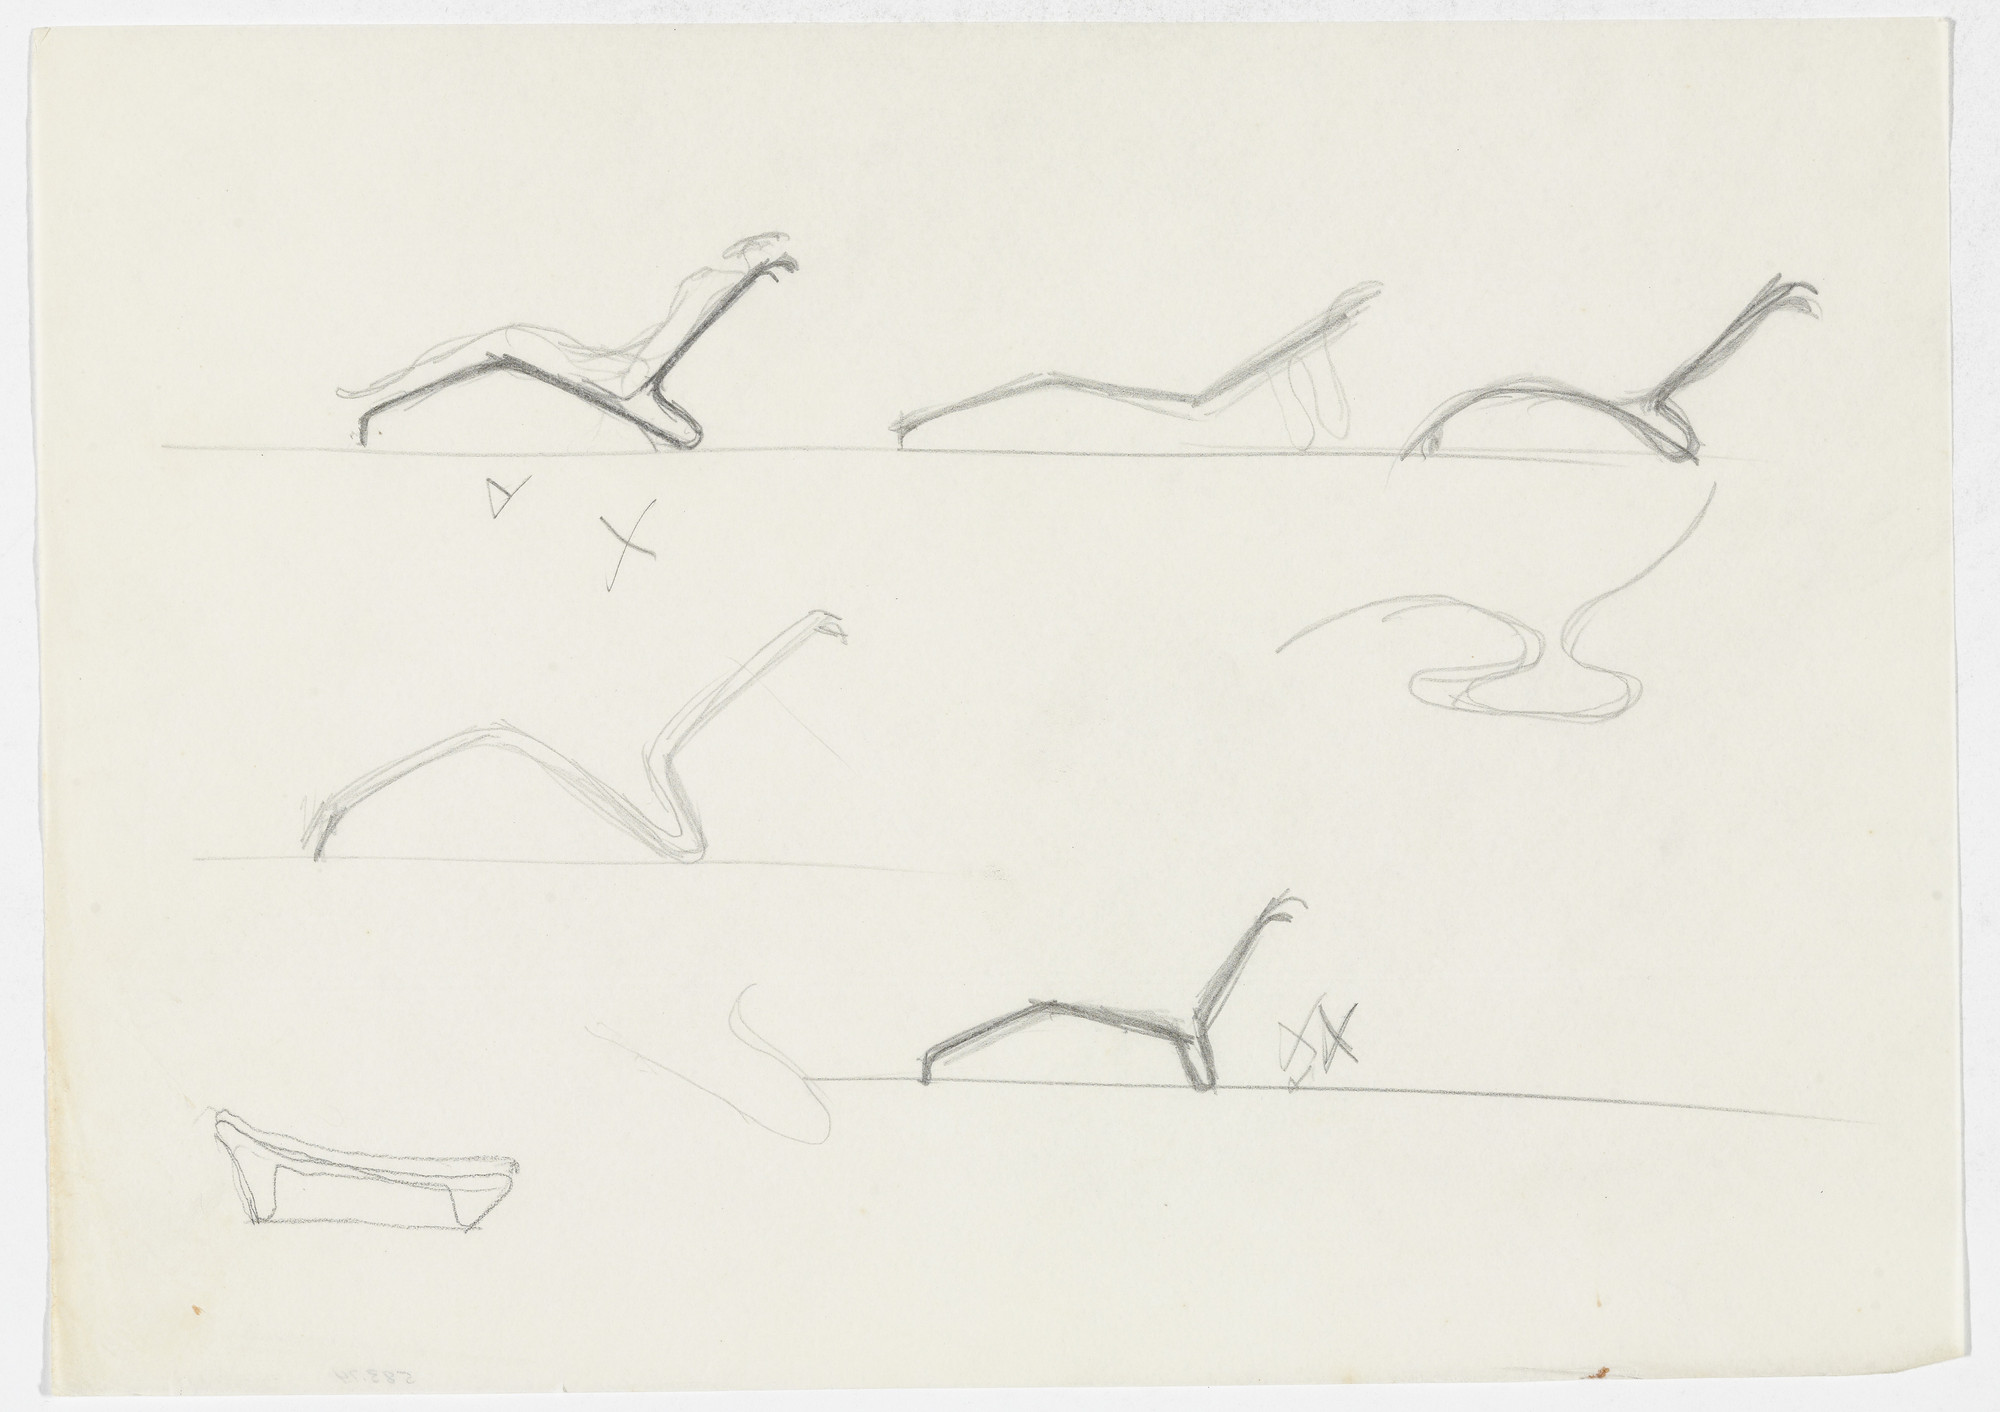 Ludwig Mies van der Rohe. Reclining Chair without Arms (Seven elevation sketches, one with figure). 1931-1932